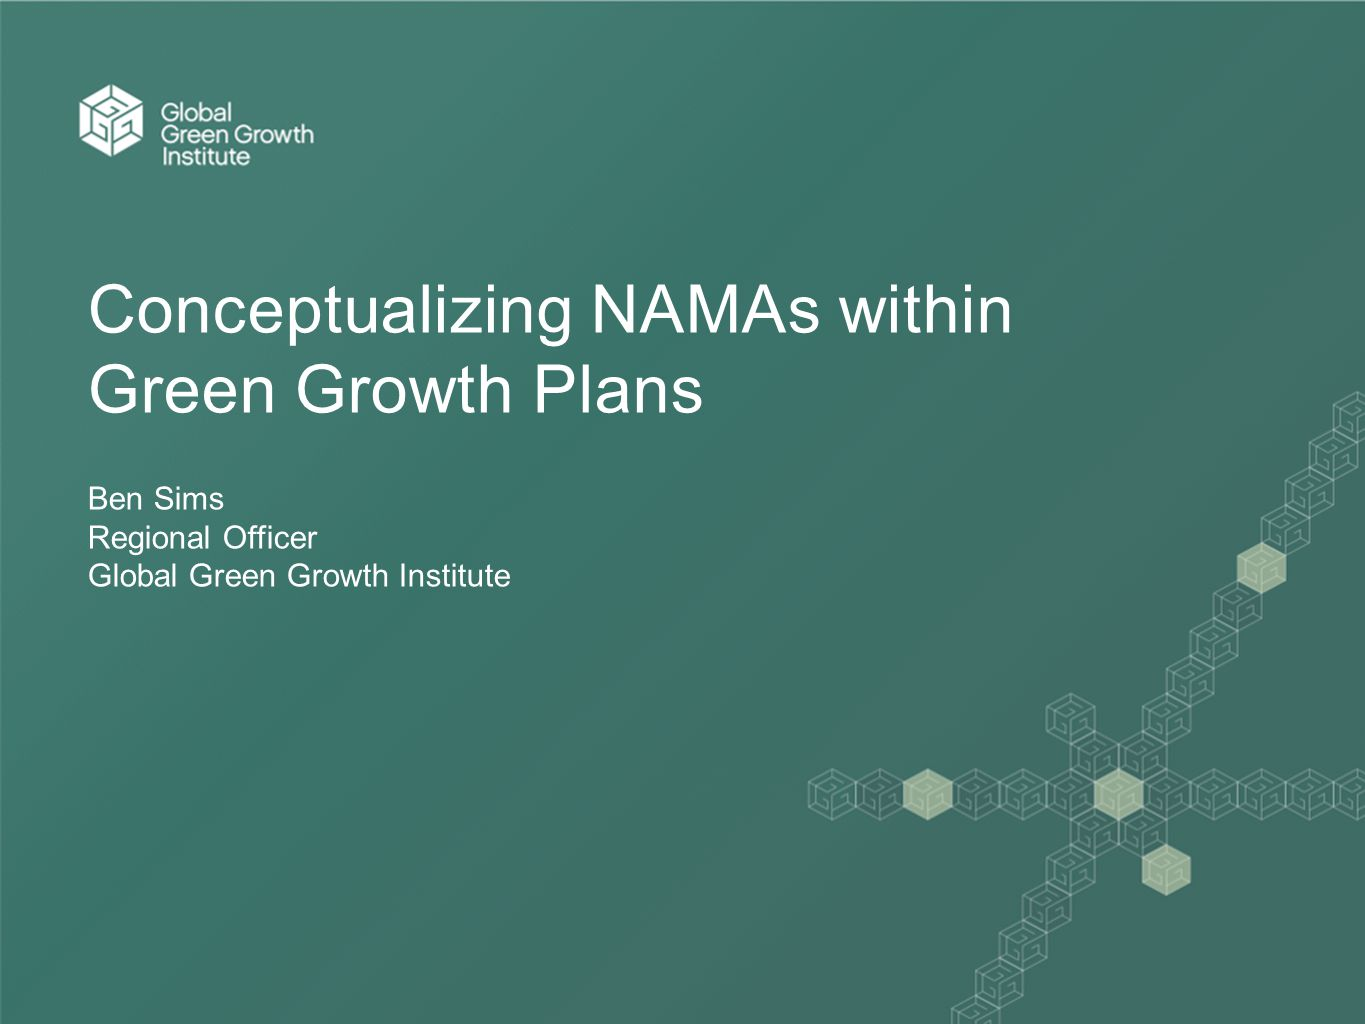 CONTENTS 1.Introduction 2.Approach and mission 3.Workstreams 4.Snapshot of GGGI approach 5.Portfolio summary 6.GGGI's focus in East Asia and the Pacific 7.Green growth planning and NAMAs 8.Future role of GGGI in NAMA programmes 9.Case study one: Indonesia 10.